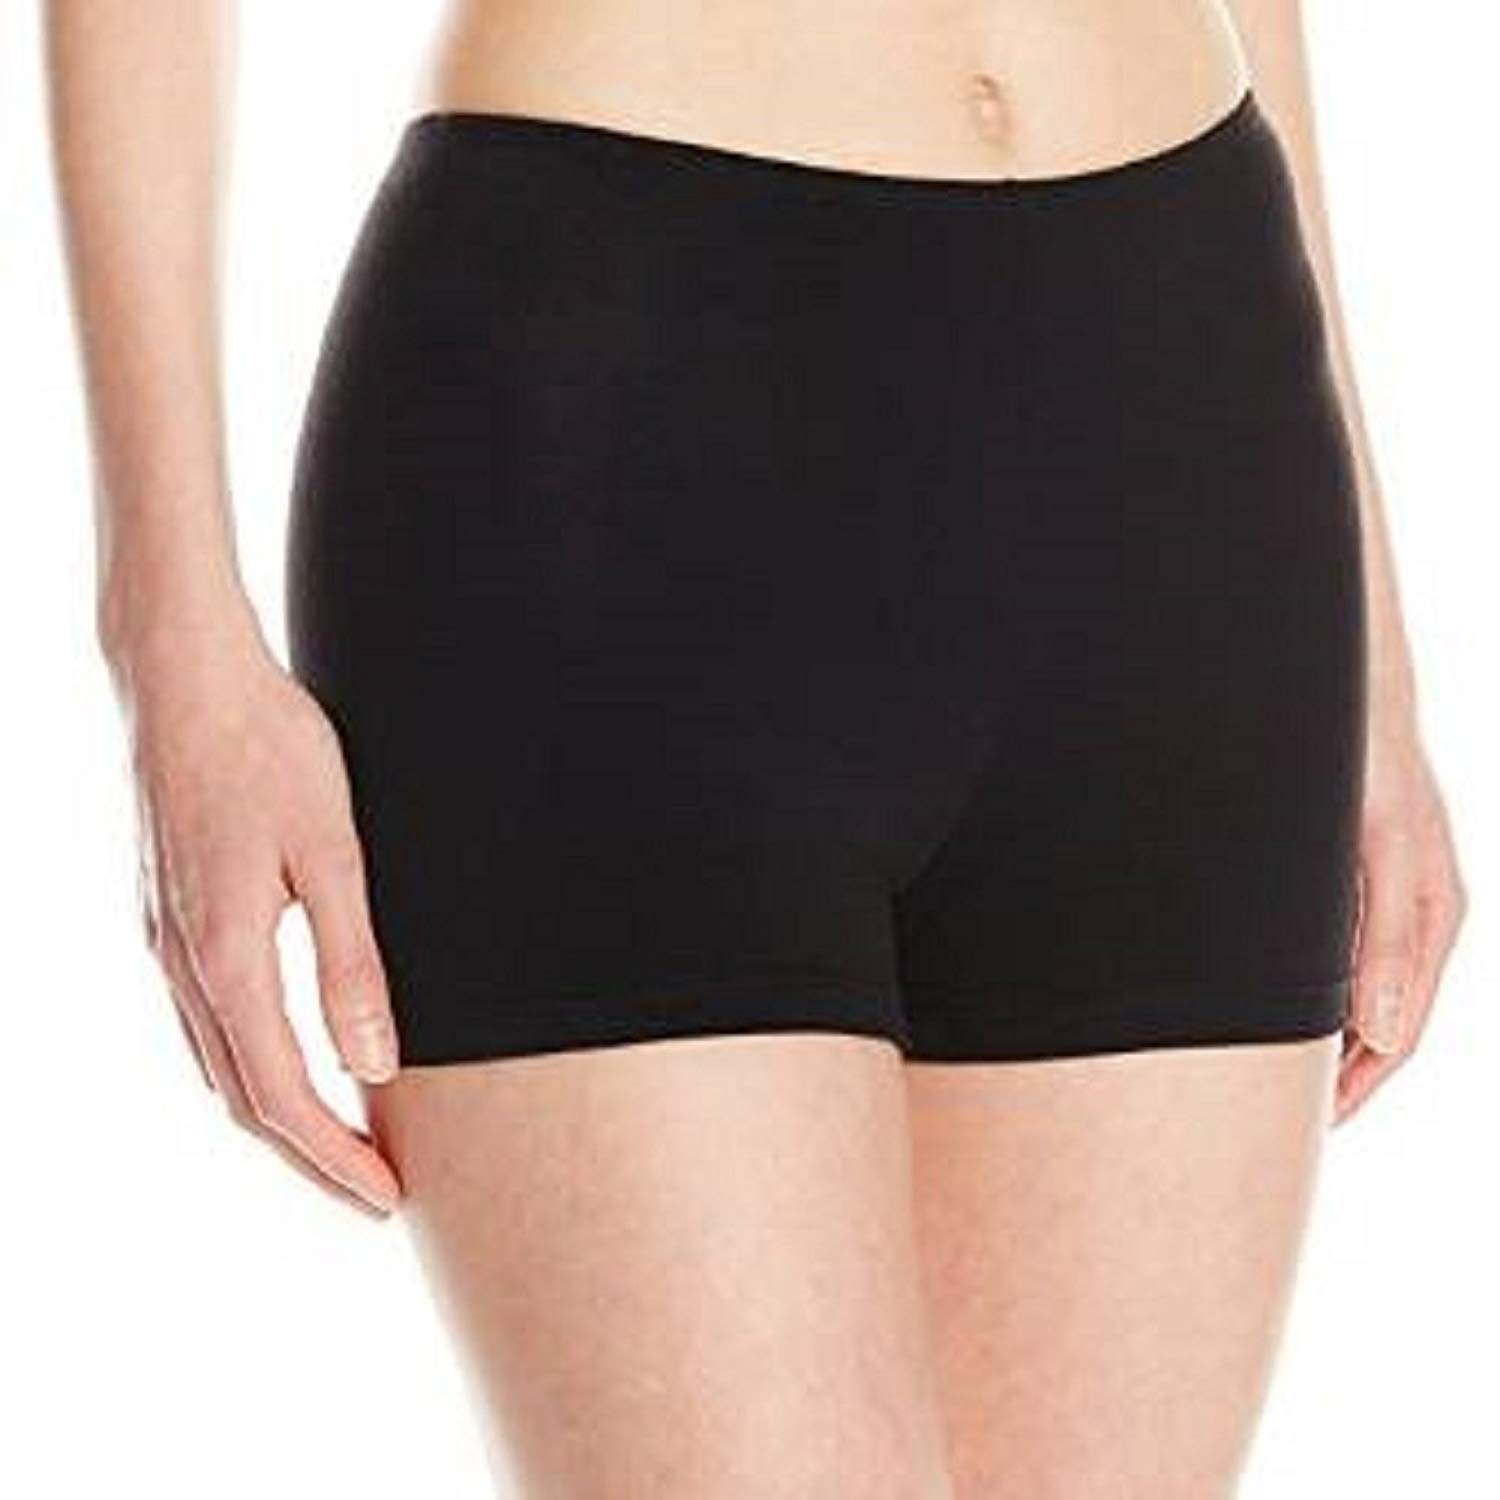 Elita Les Essentiels Boy Leg Brief Panties - 4070